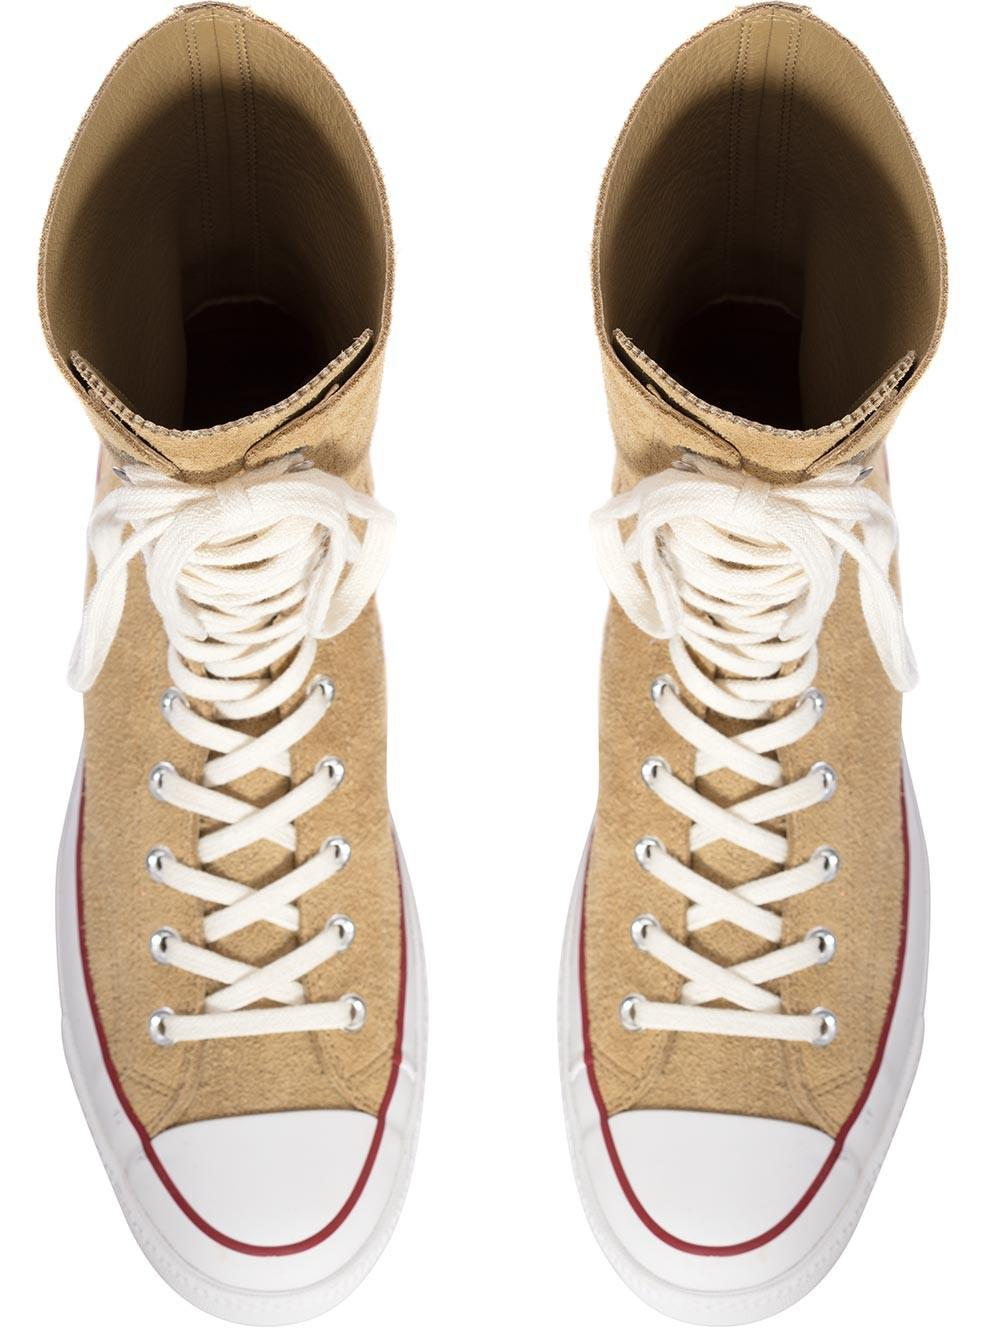 d4d9637e6a39 JW Anderson Mens Gold Suede Chuck Taylor Knee High Converse in ...